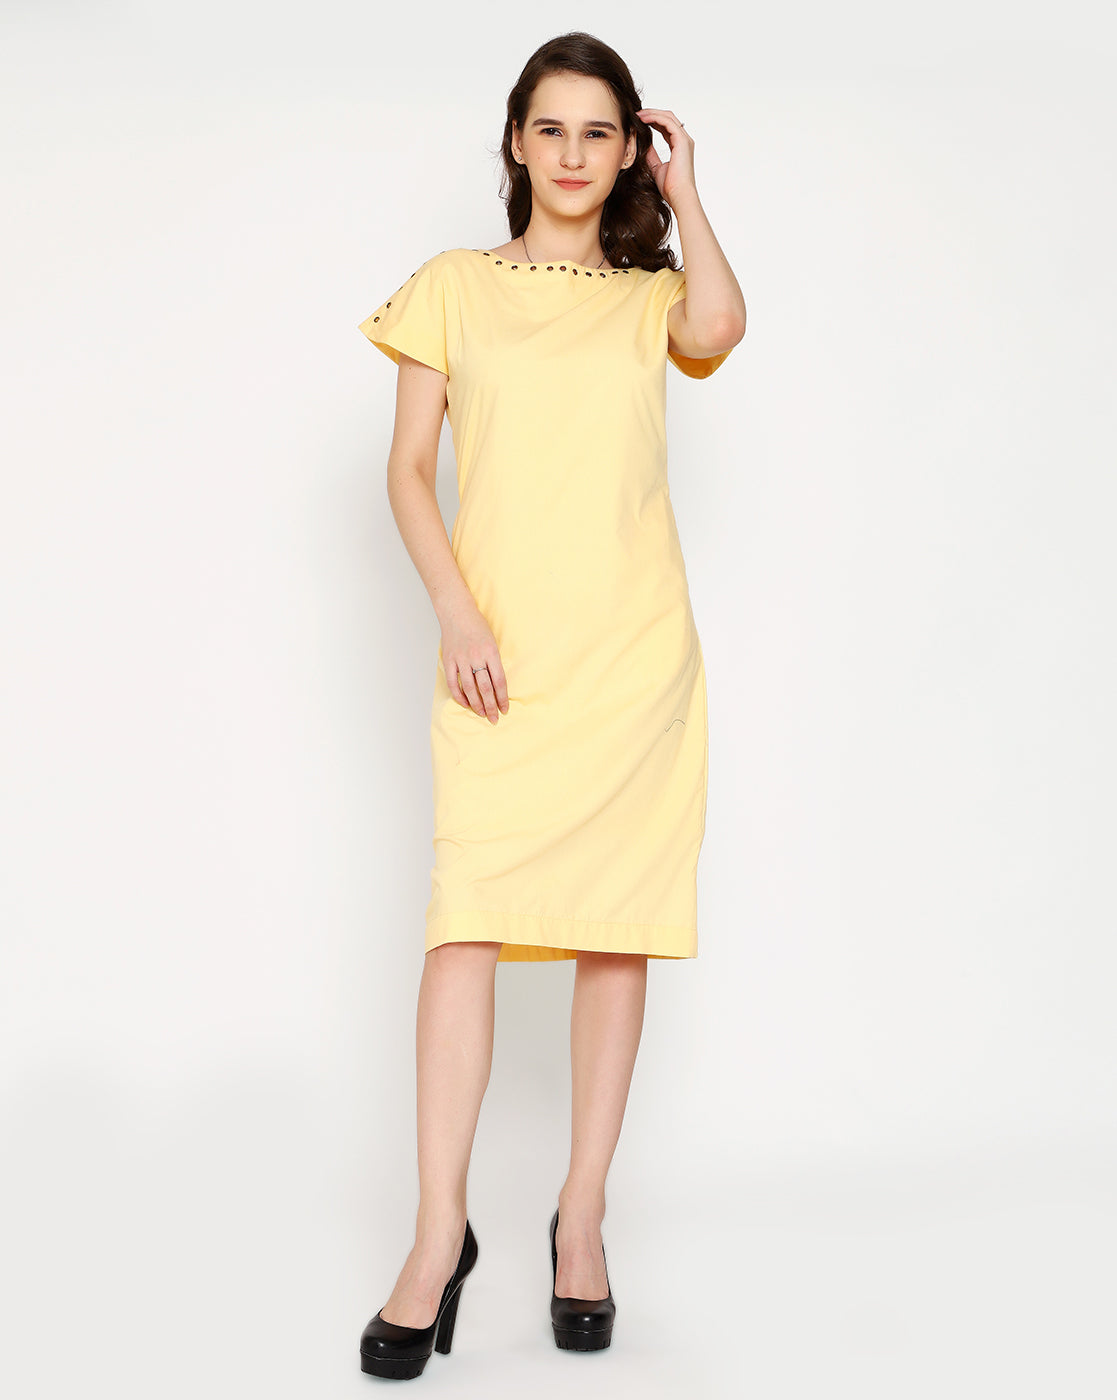 The Victorian Eyelet Dress - Buttercup Yellow